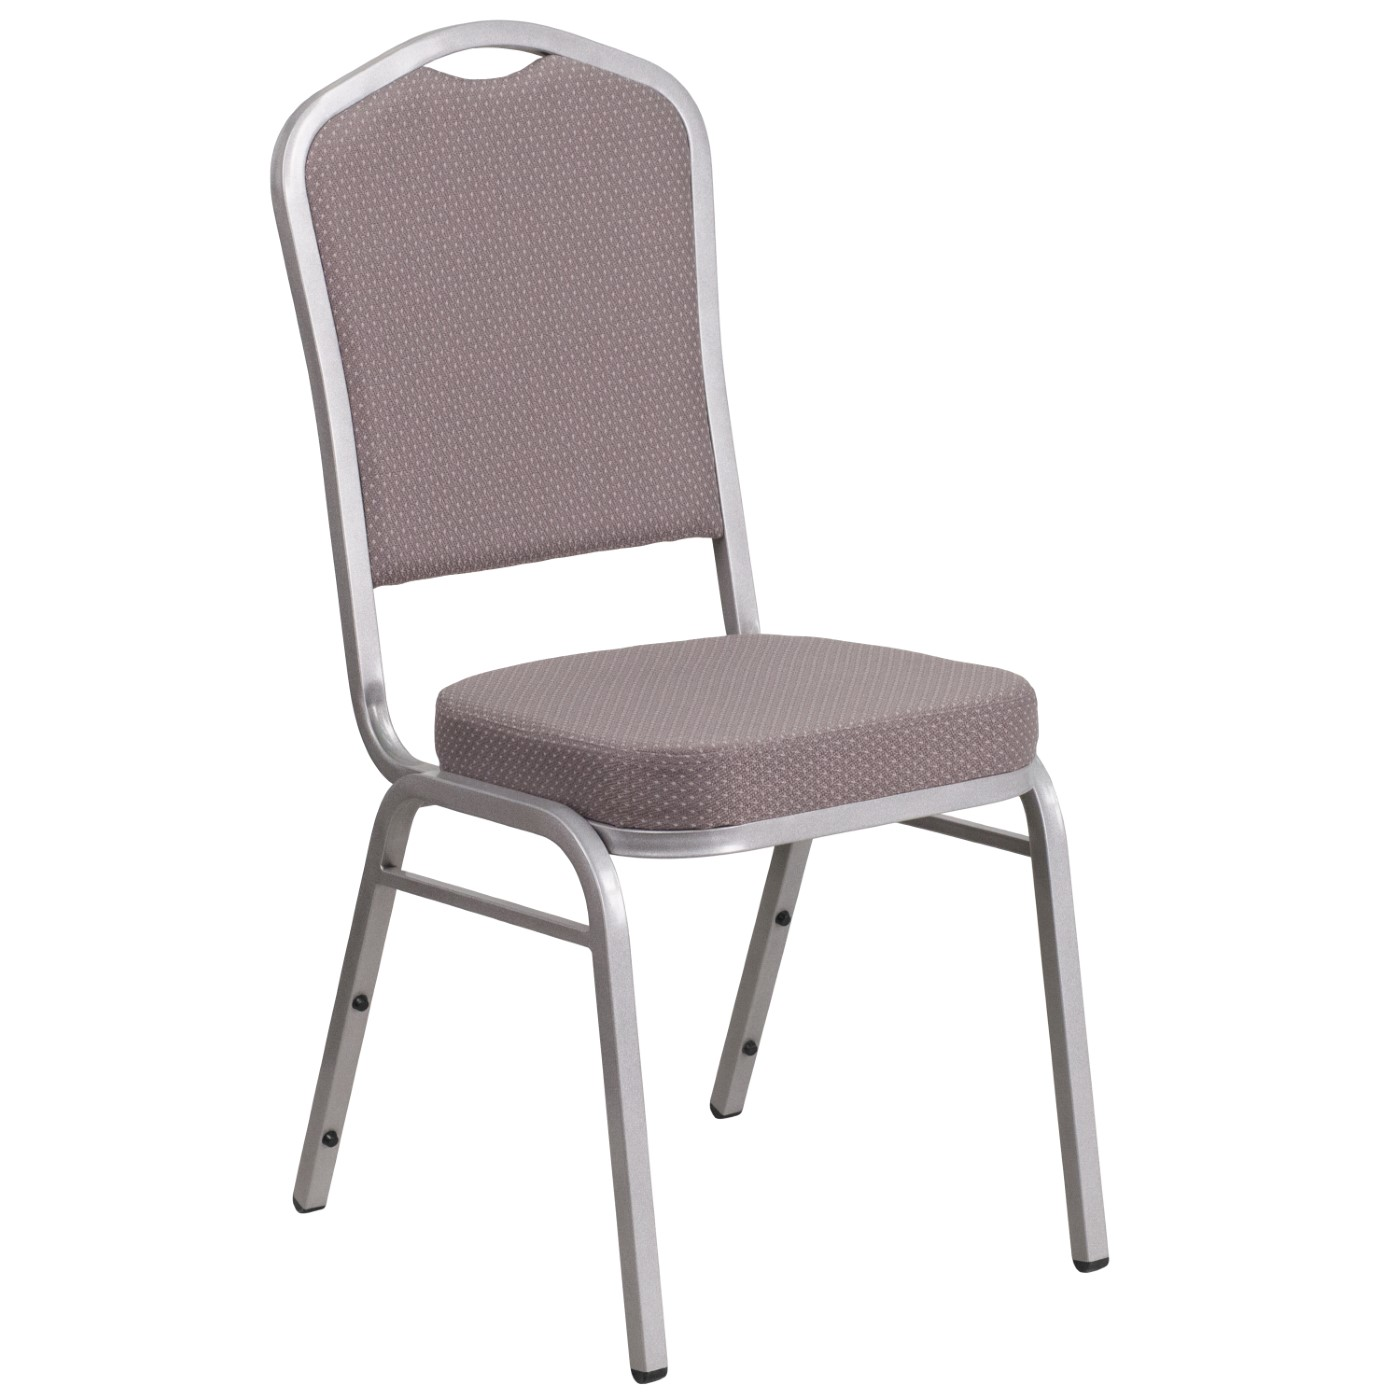 TOUGH ENOUGH Series Crown Back Stacking Banquet Chair in Gray Dot Fabric - Silver Frame